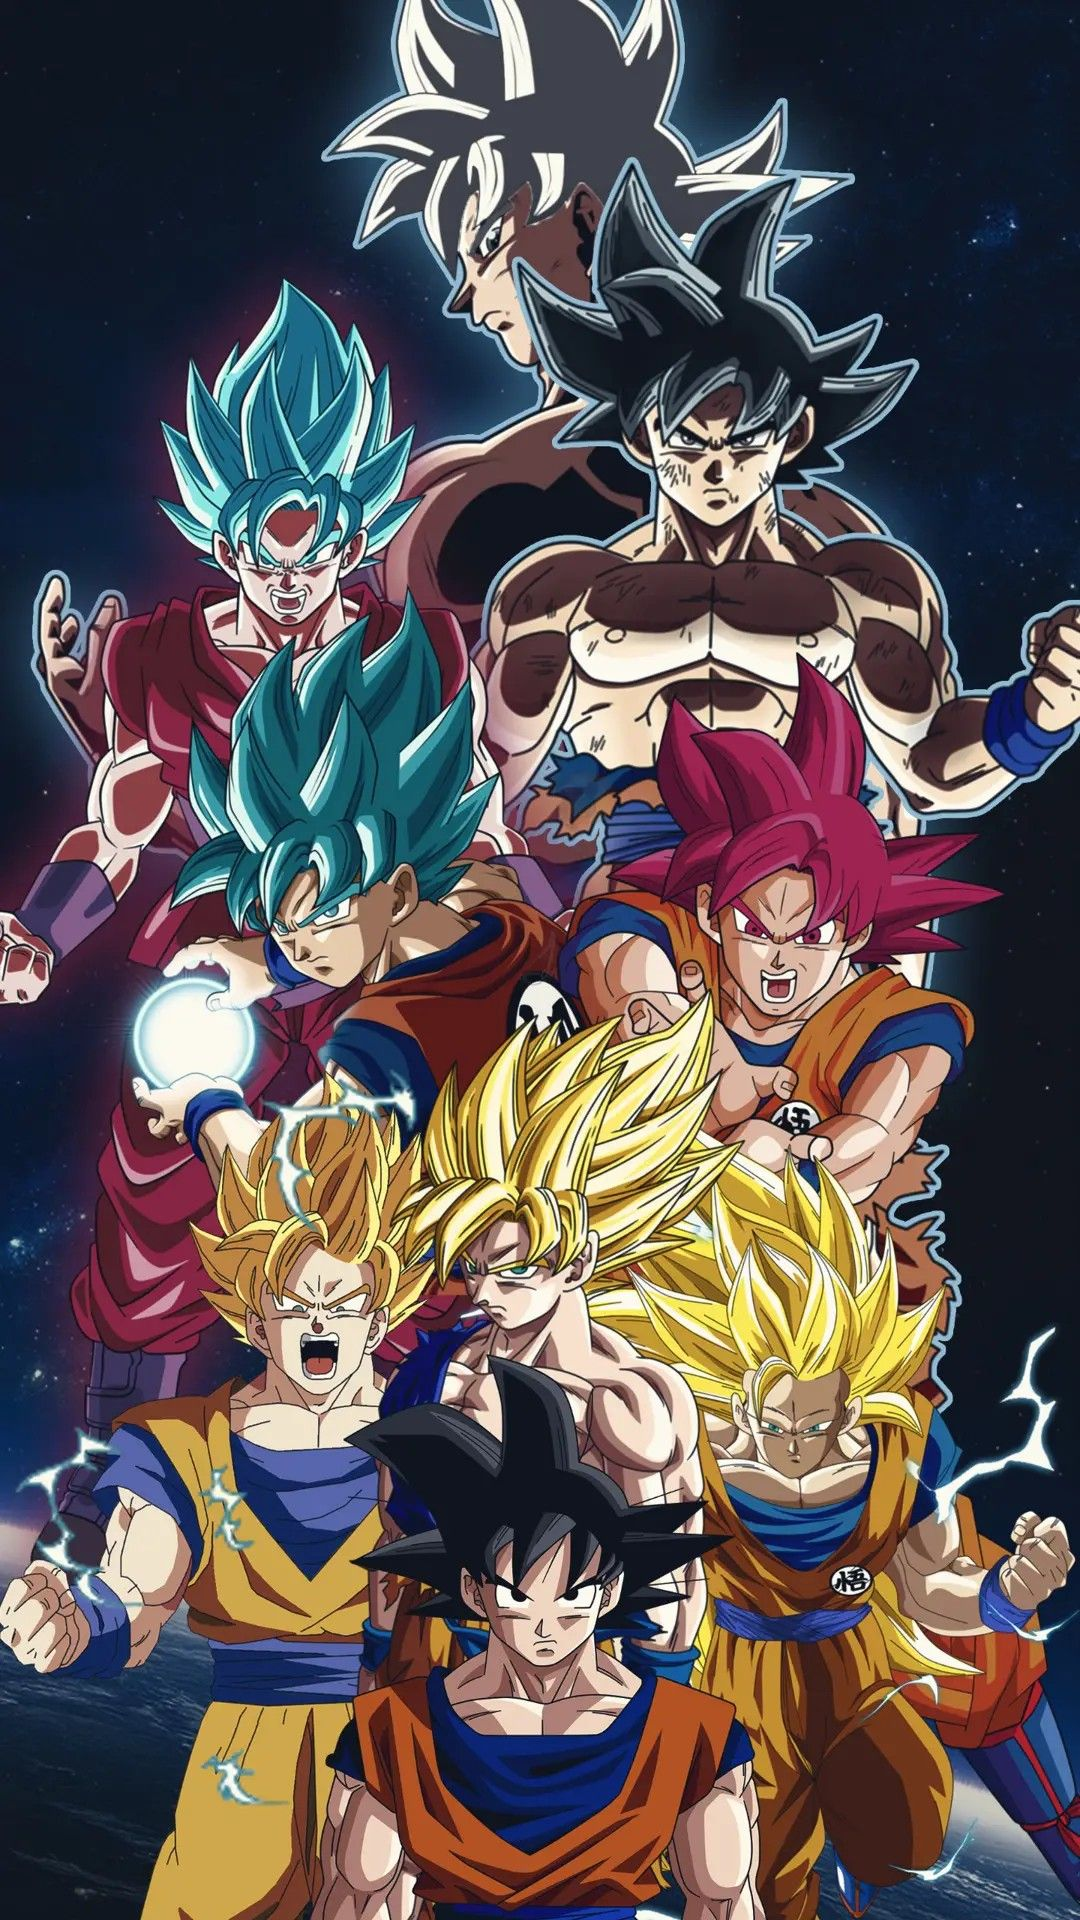 Dragon Ball Z Wallpapers Goku Special Dragonballz Dragon Ball Super Wallpapers Dragon Ball Painting Dragon Ball Wallpapers